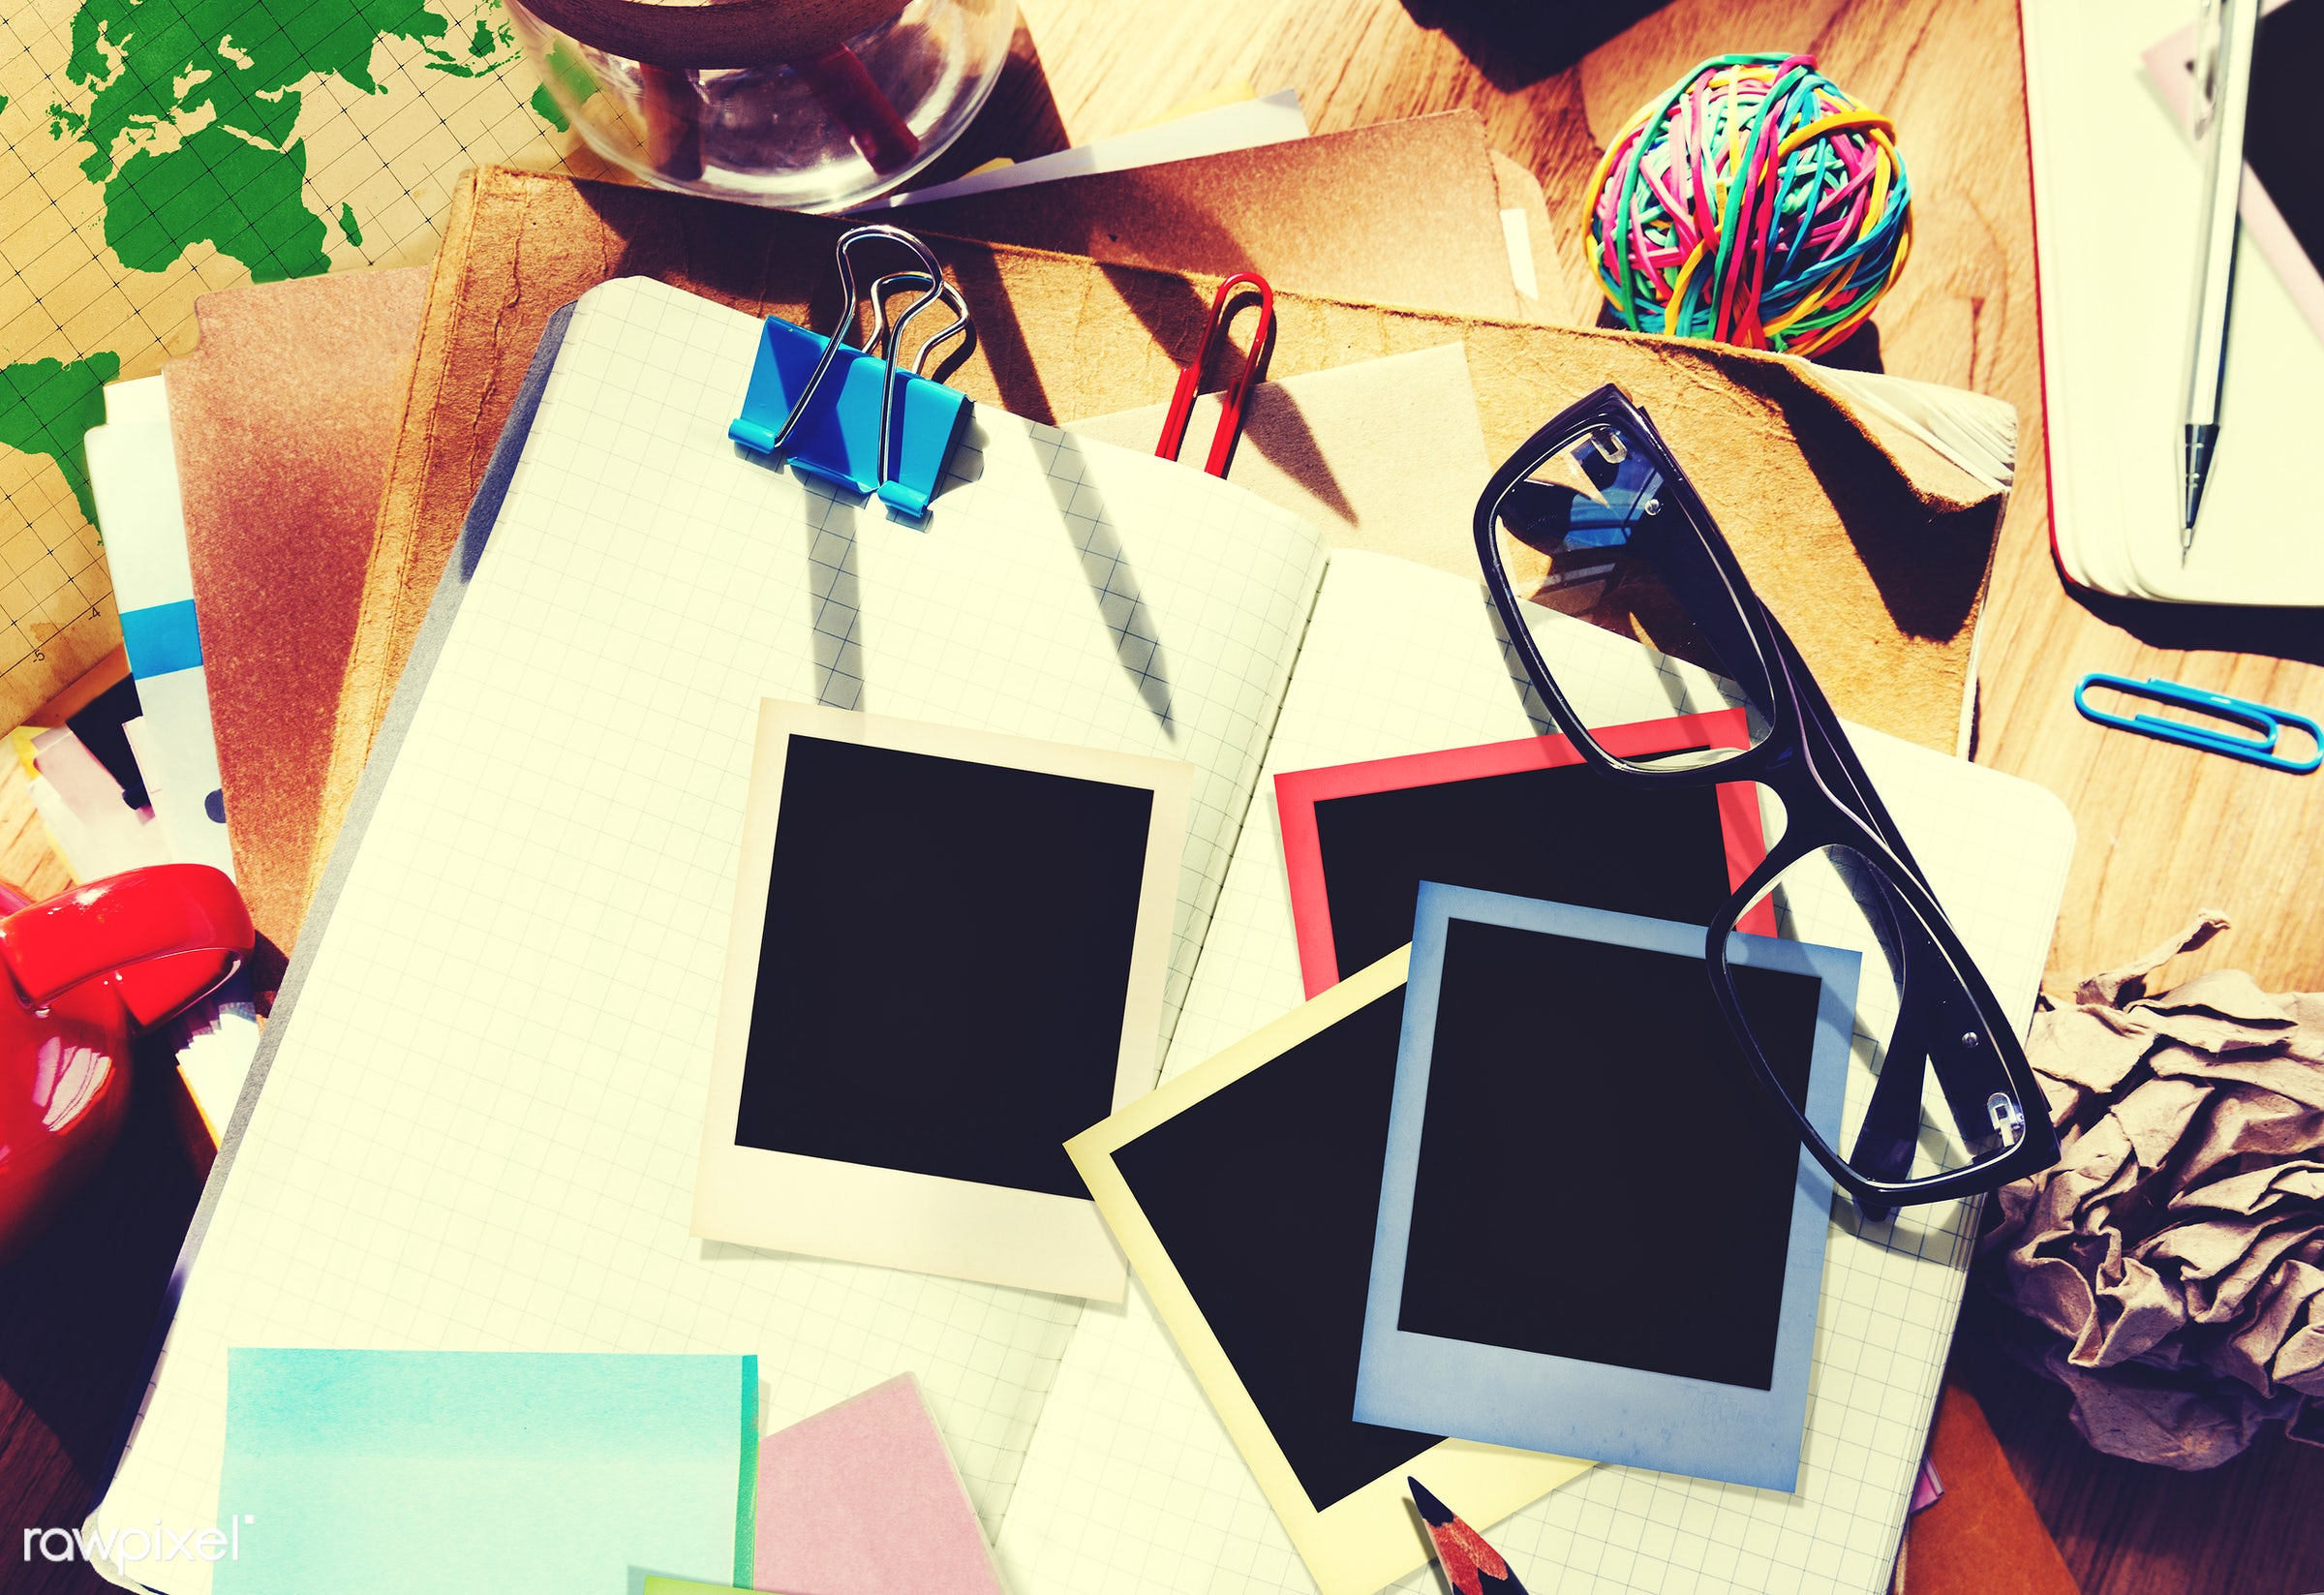 adhesive note, desk, diary, education, film, group of objects, information medium, instant camera, instant photo, messy,...